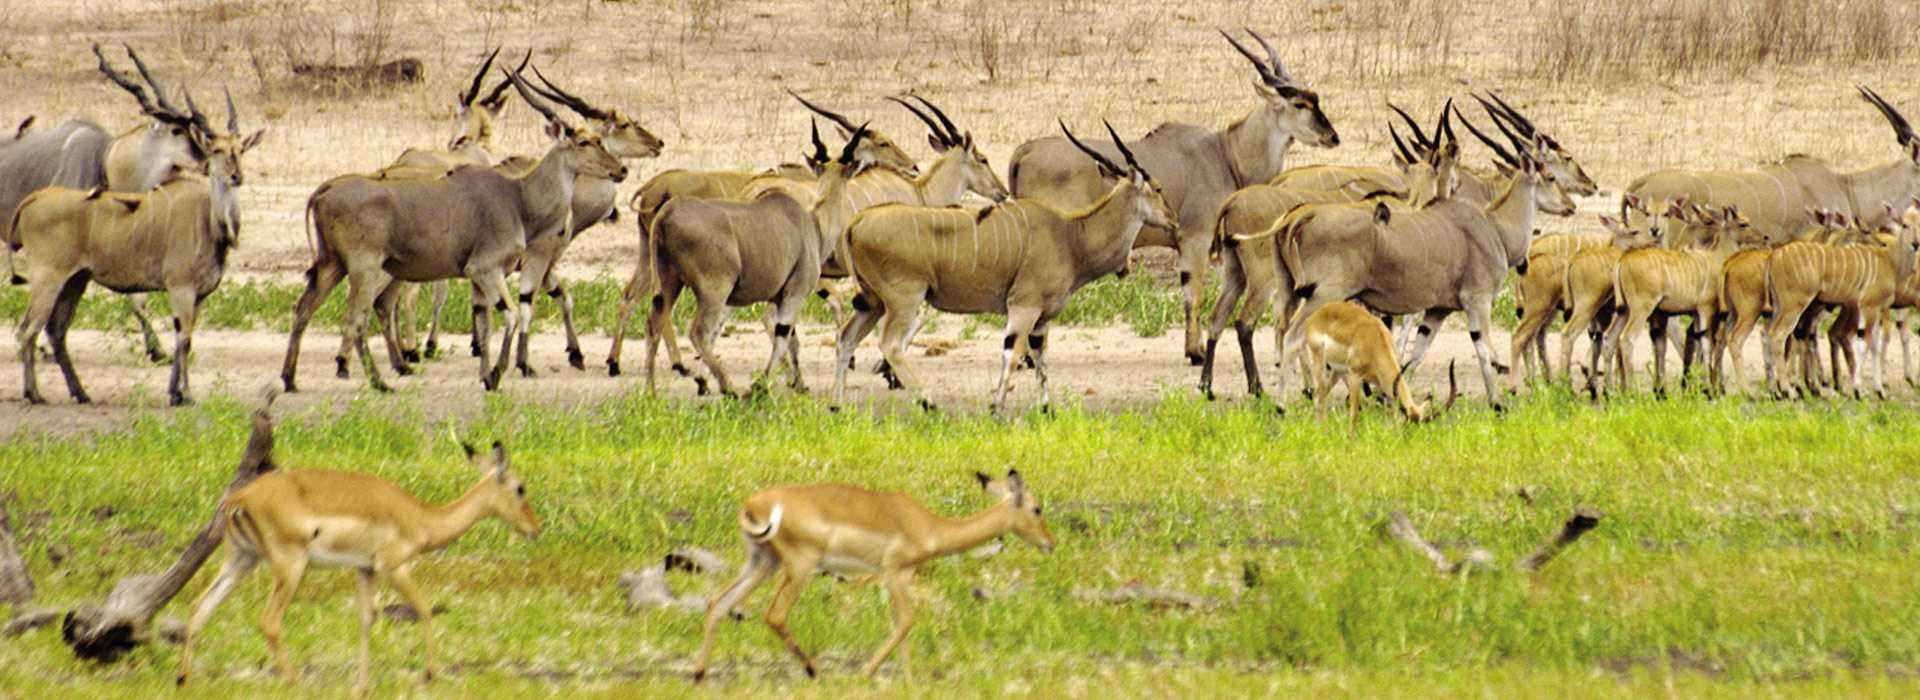 Large Herd Of Impala On The Plains